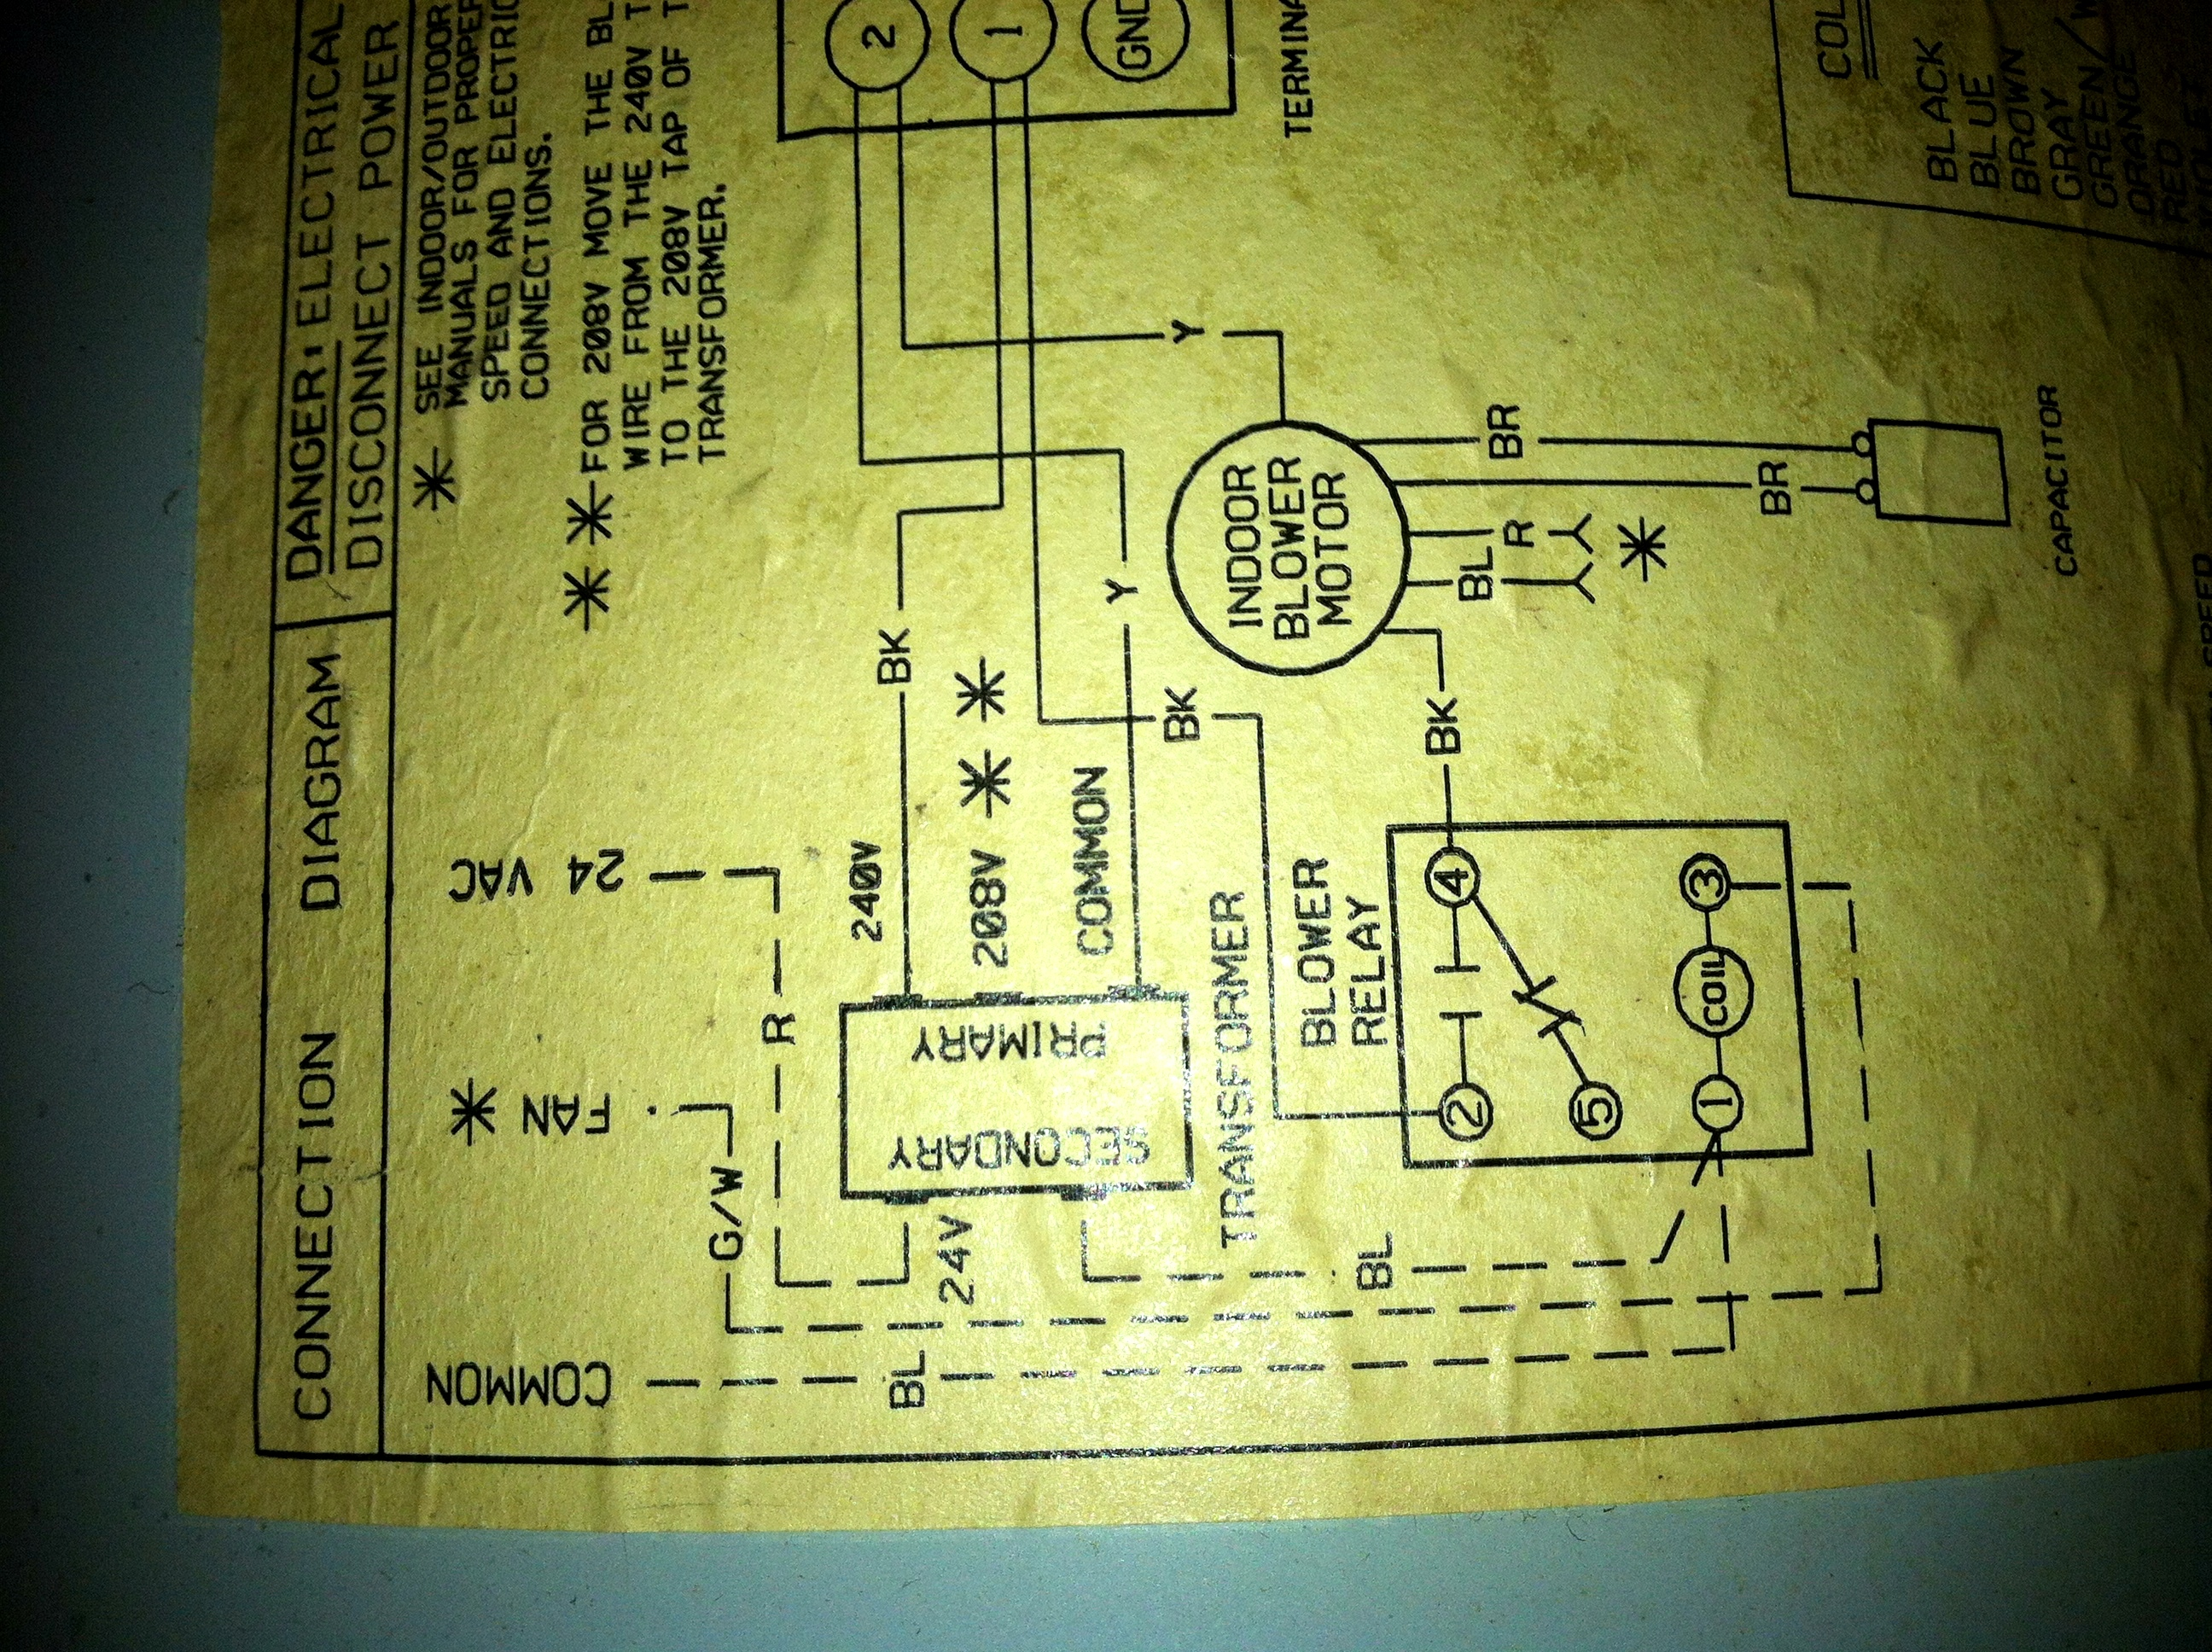 Luxaire Condensor Unit Wiring Diagram Explained Diagrams Heat Pump Nordyne Air Handler Blower Motor Trusted Furnace